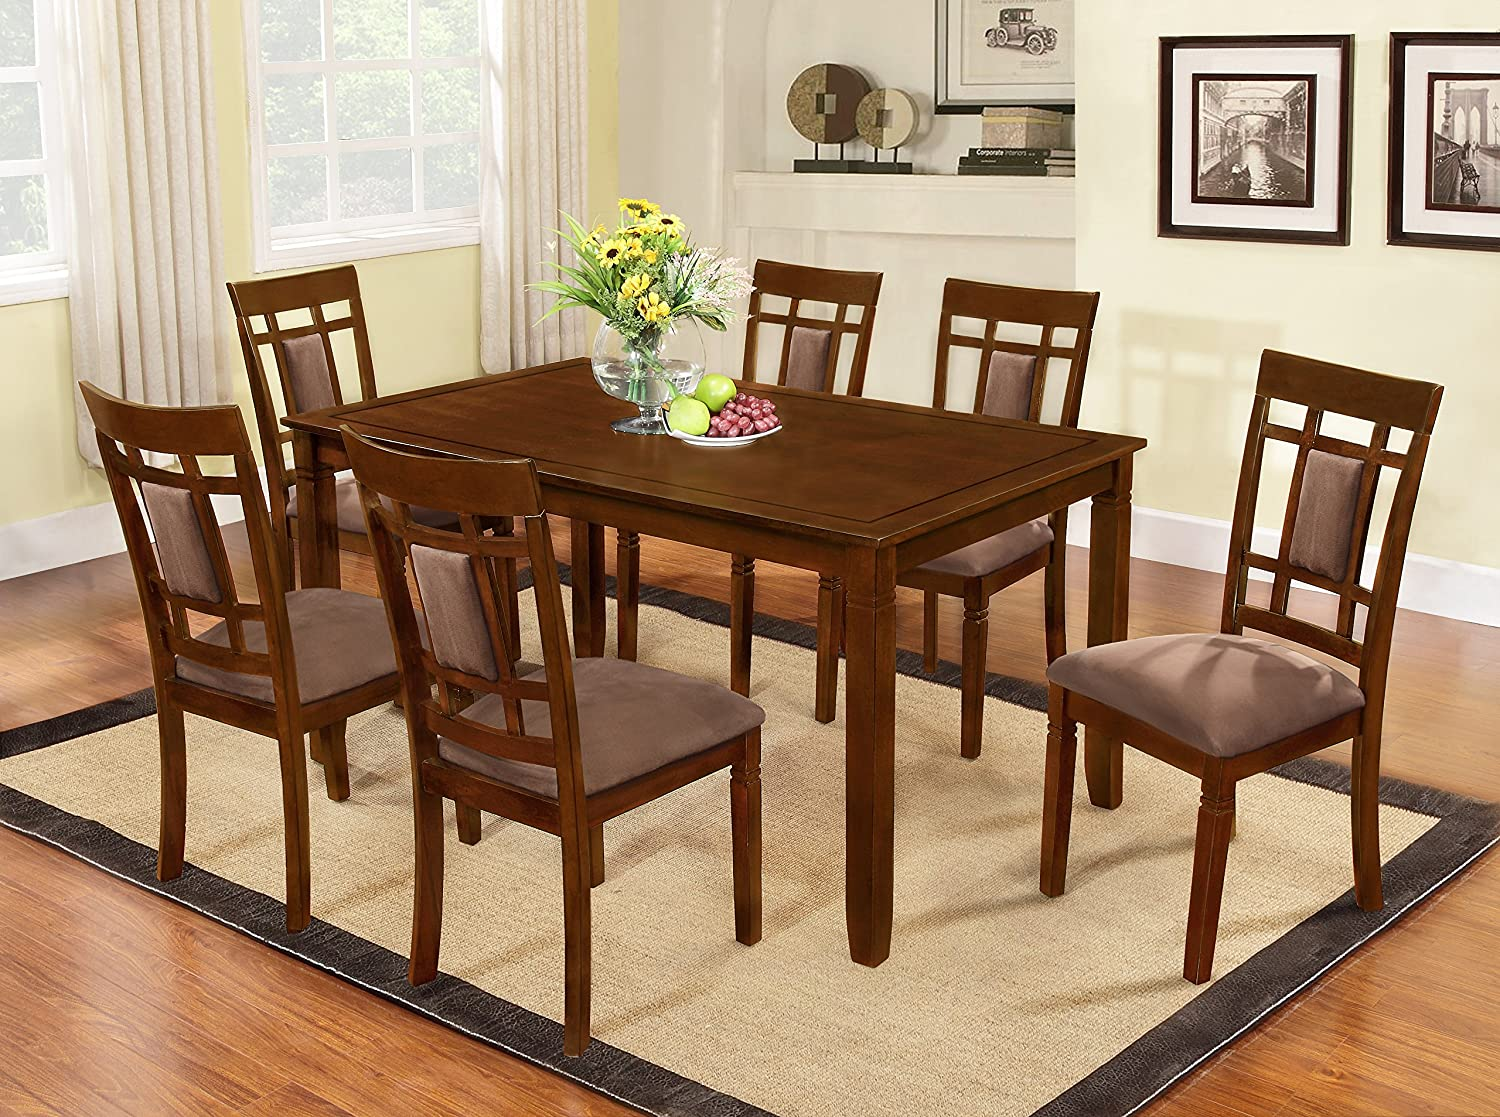 Amazon.com - The Room Style 7 piece Cherry Finish Solid Wood Dining Table Set - Table \u0026 Chair Sets & Amazon.com - The Room Style 7 piece Cherry Finish Solid Wood Dining ...